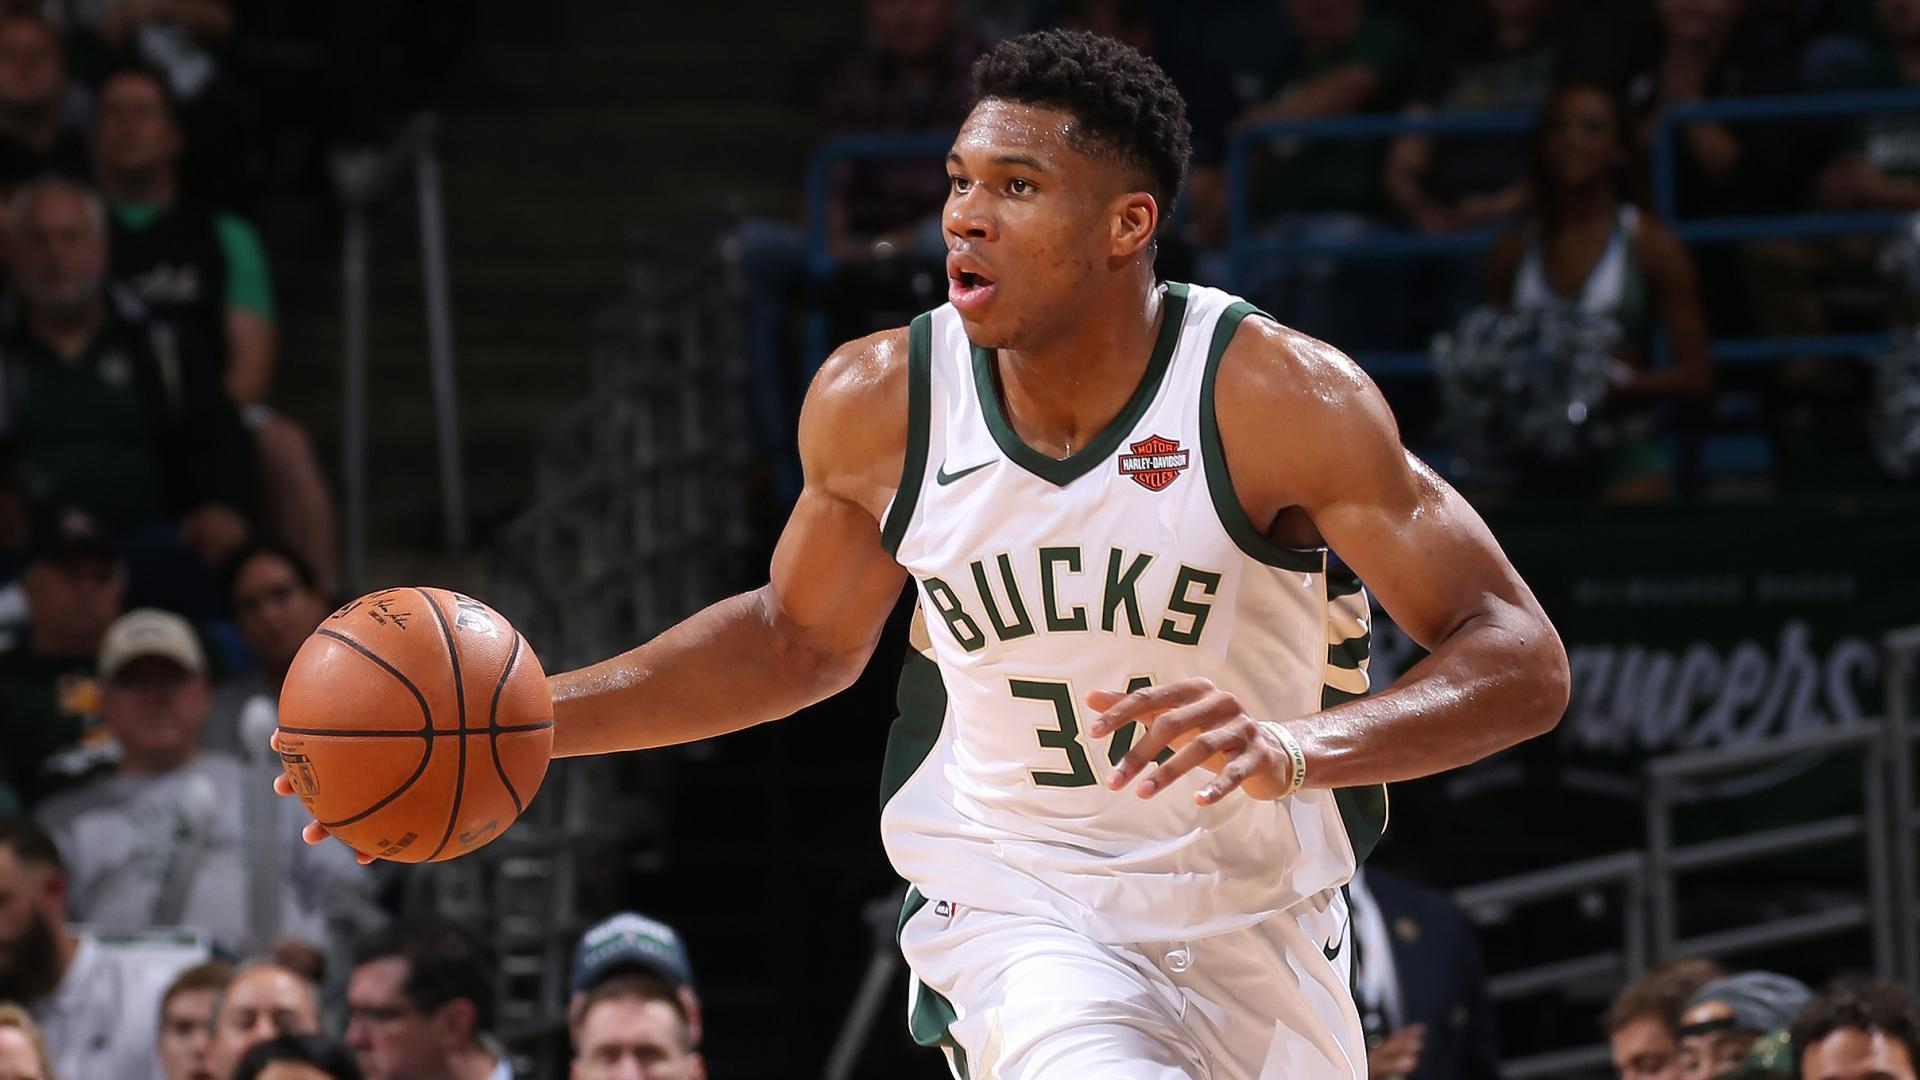 Giannis Antetokounmpo After Career High  Points This Is Just The Beginning Nba Com